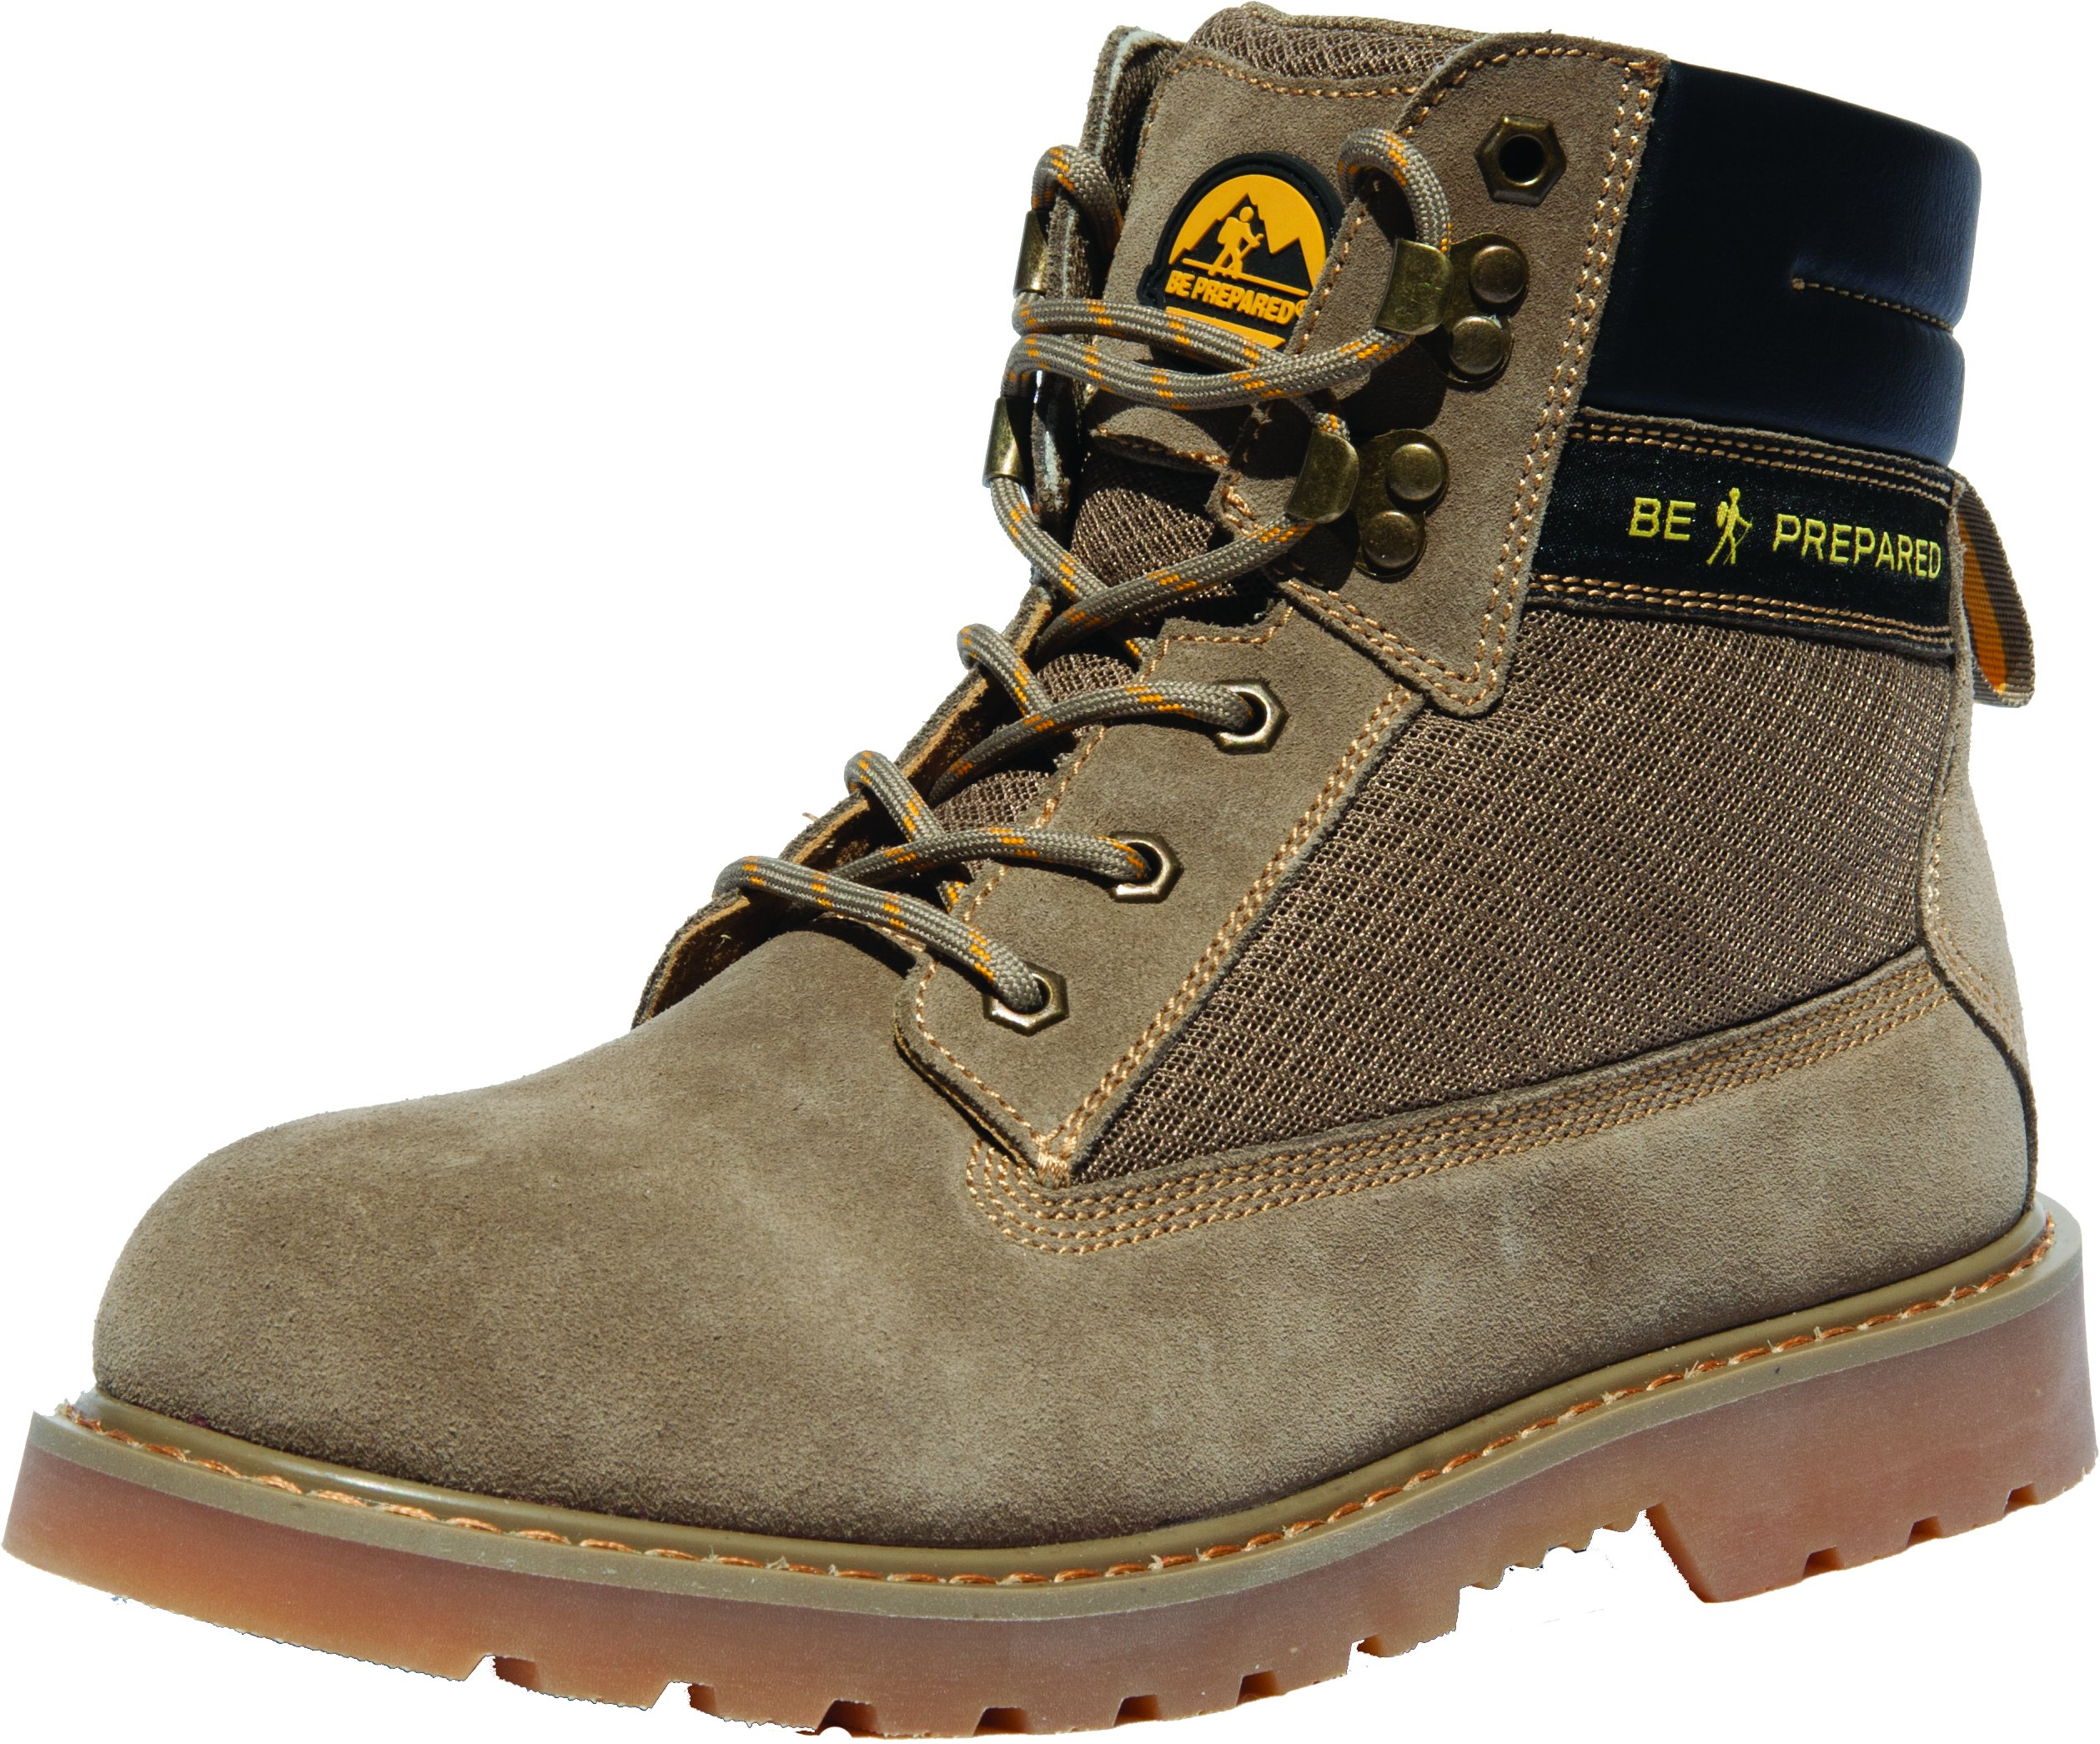 Official Boy Scouts of America Outdoor Hiking Boots/Shoes Scout Pro Suede (8.5) Tan